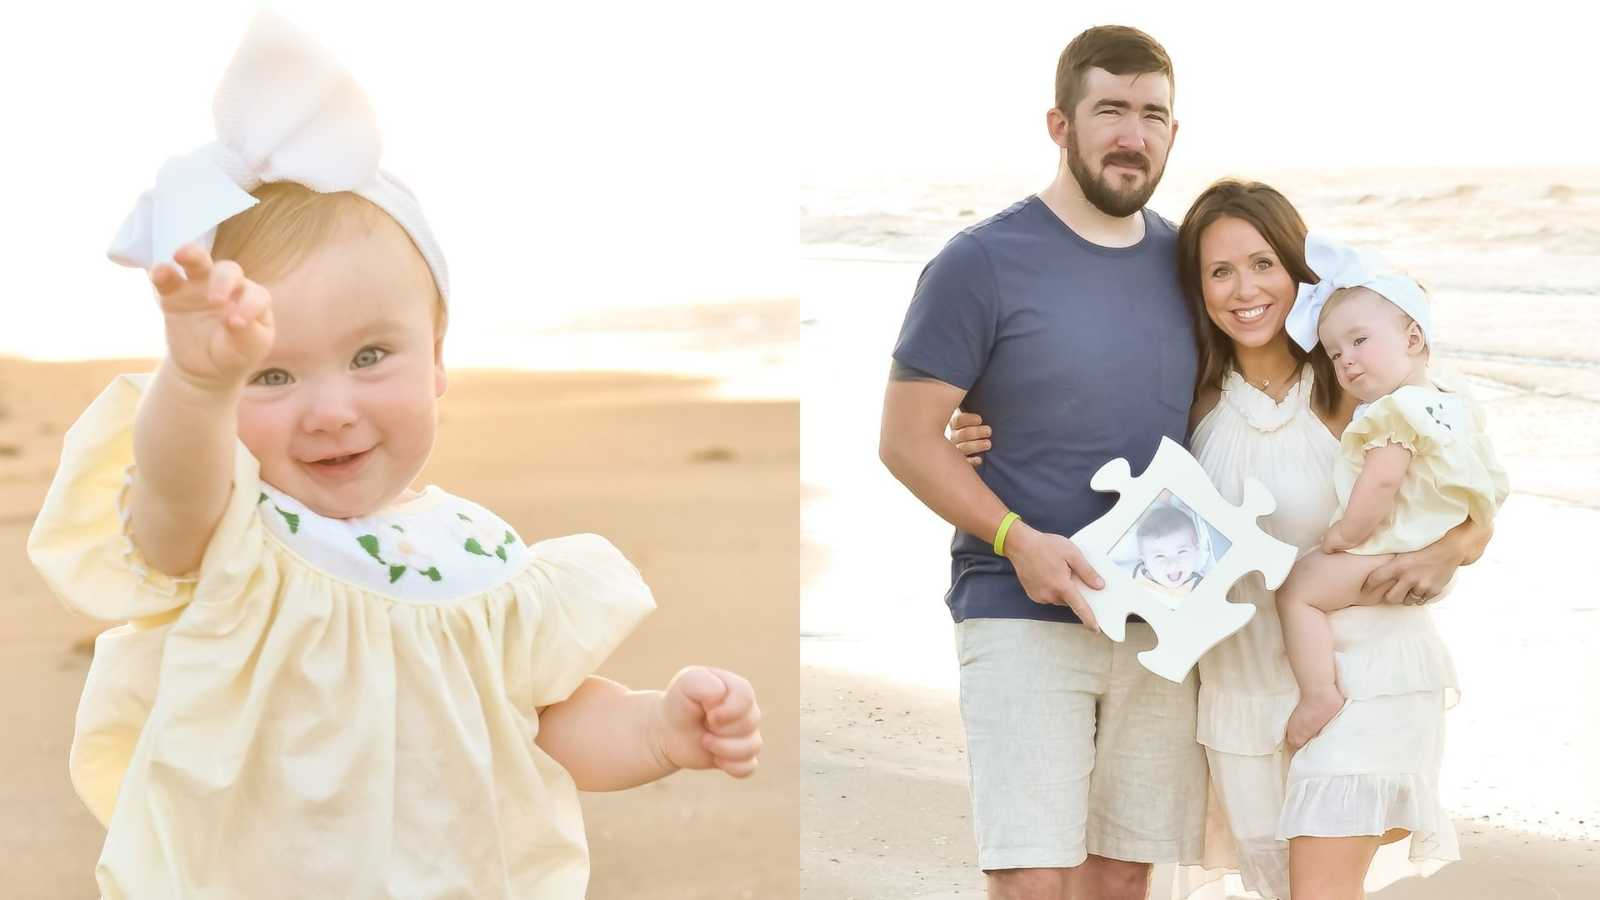 baby holding out hands, family photo on the beach